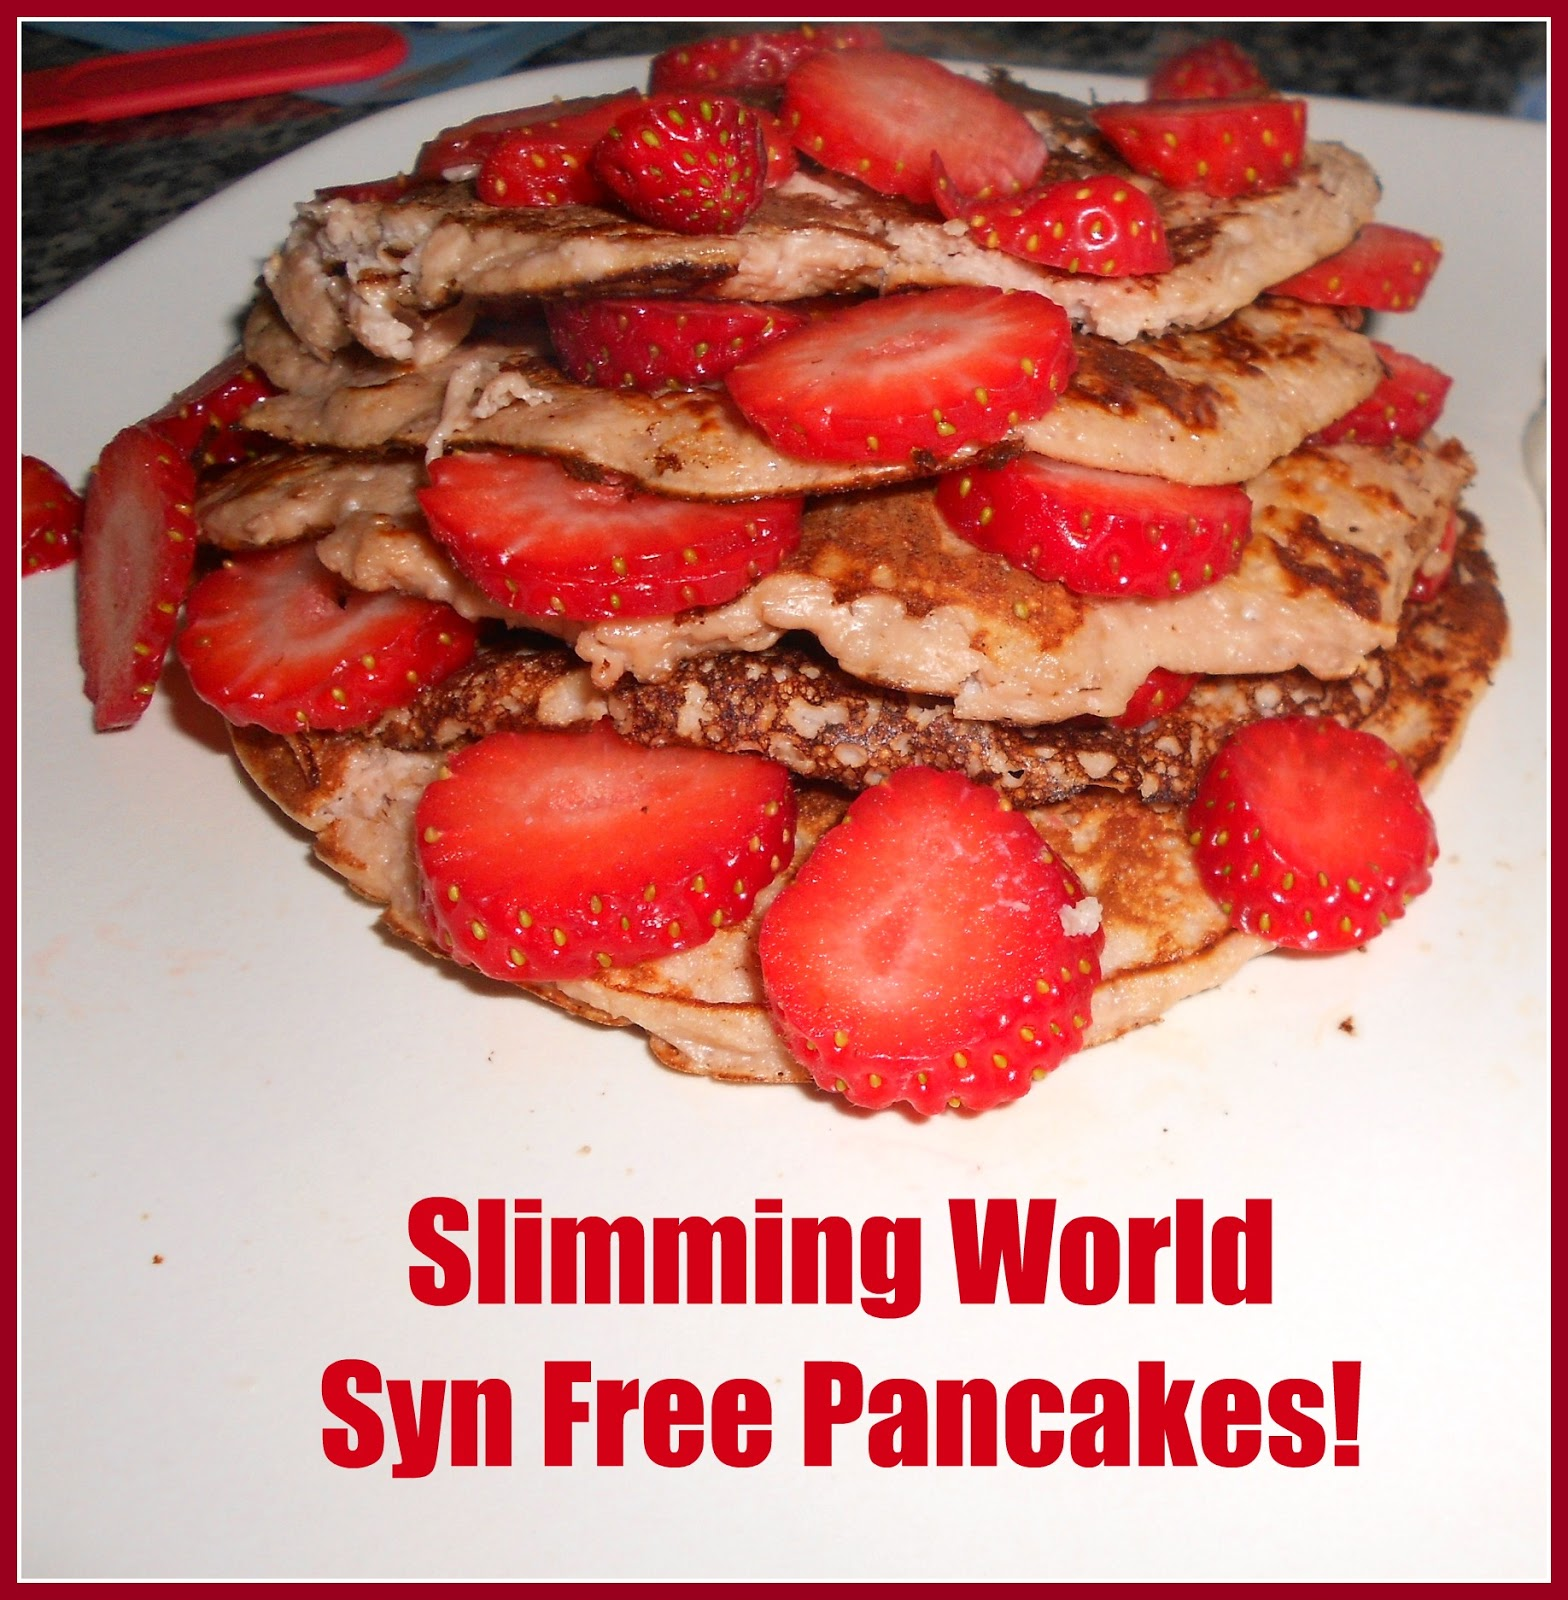 A matter of choice: Slimming World 'Syn Free' Pancakes